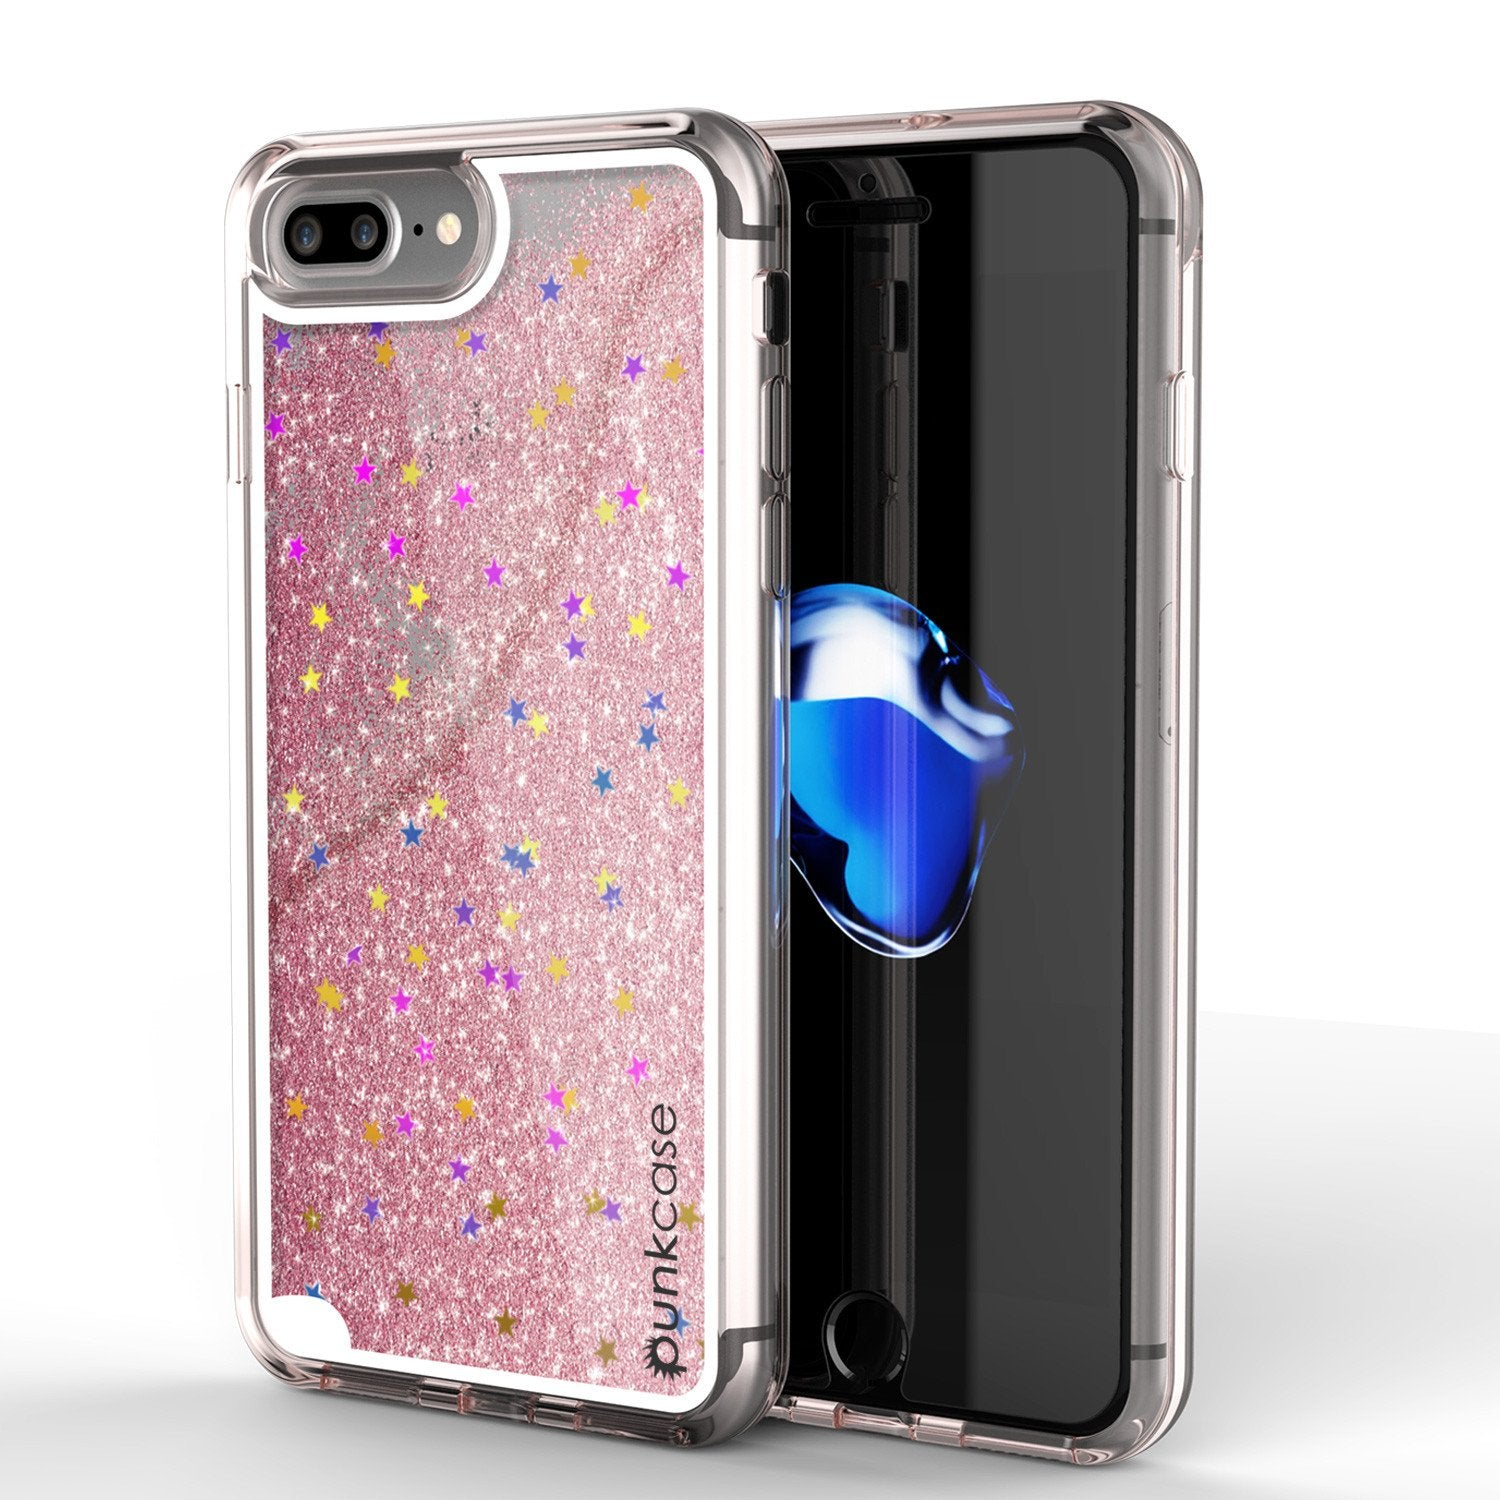 iPhone 8+ Plus Case, PunkCase LIQUID Rose Series, Protective Dual Layer Floating Glitter Cover